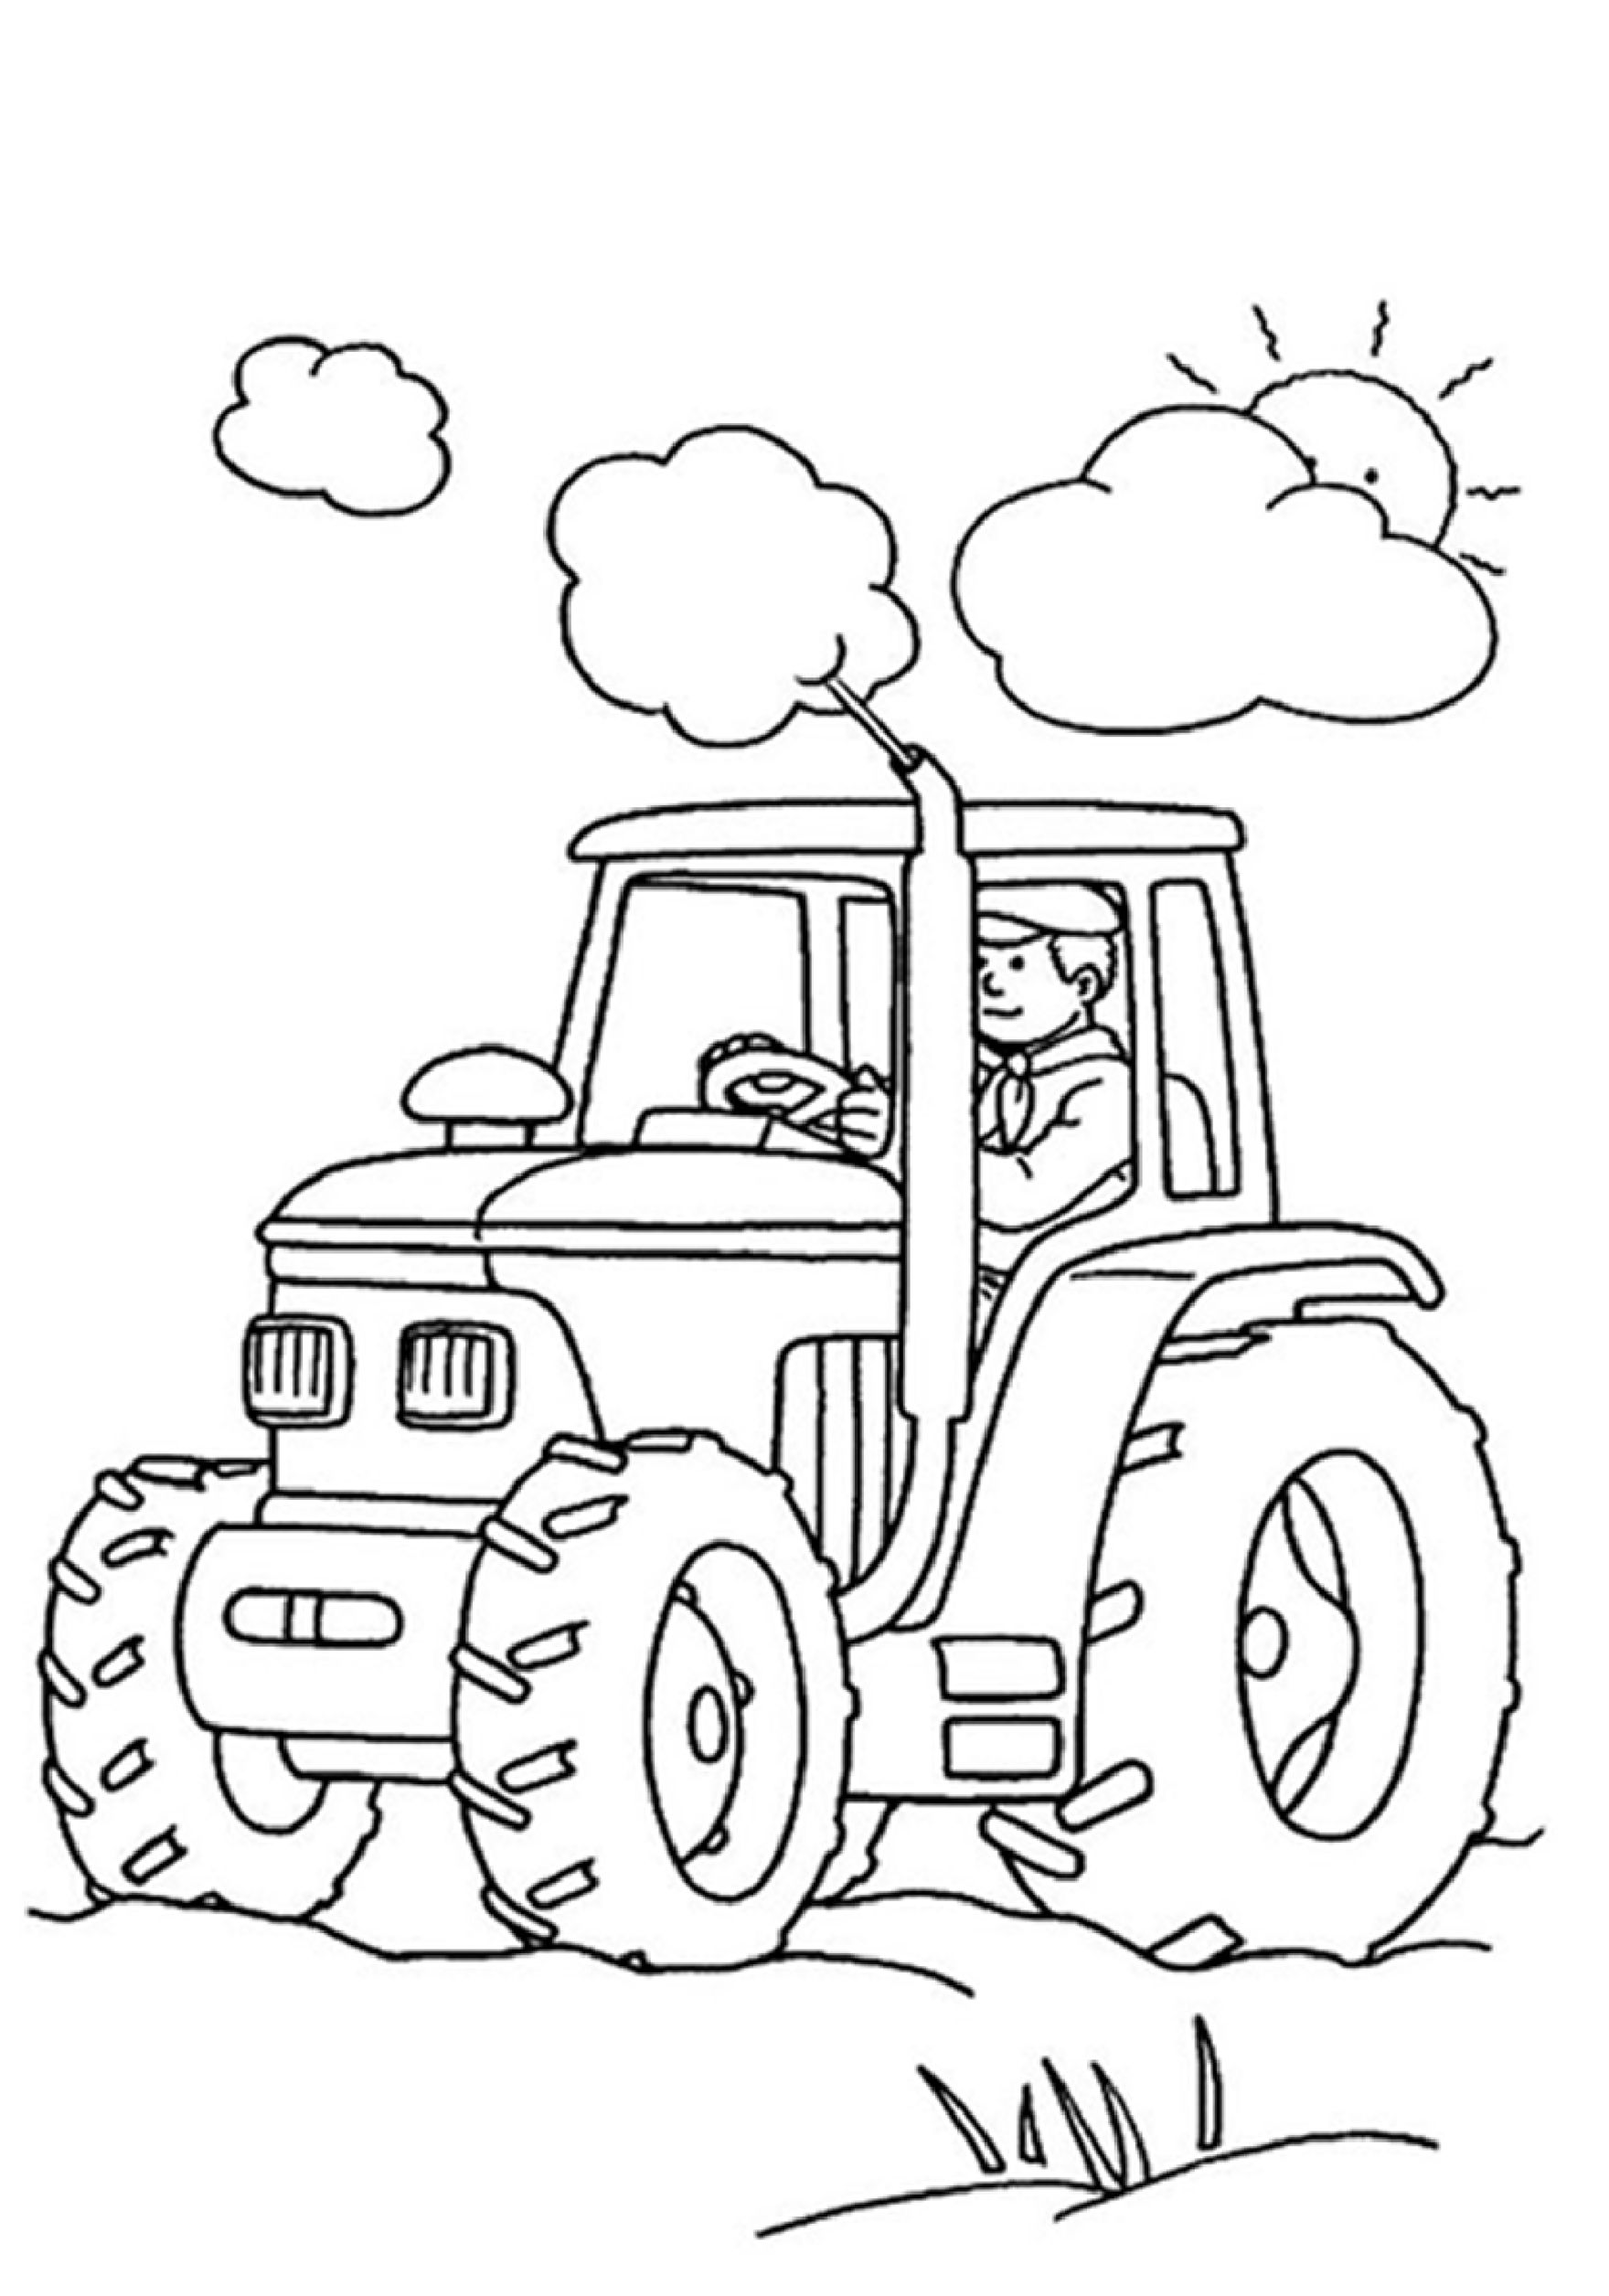 Knowledge Free Printable Coloring Pages For Kids Resume ... | free coloring pages  format for toddlers